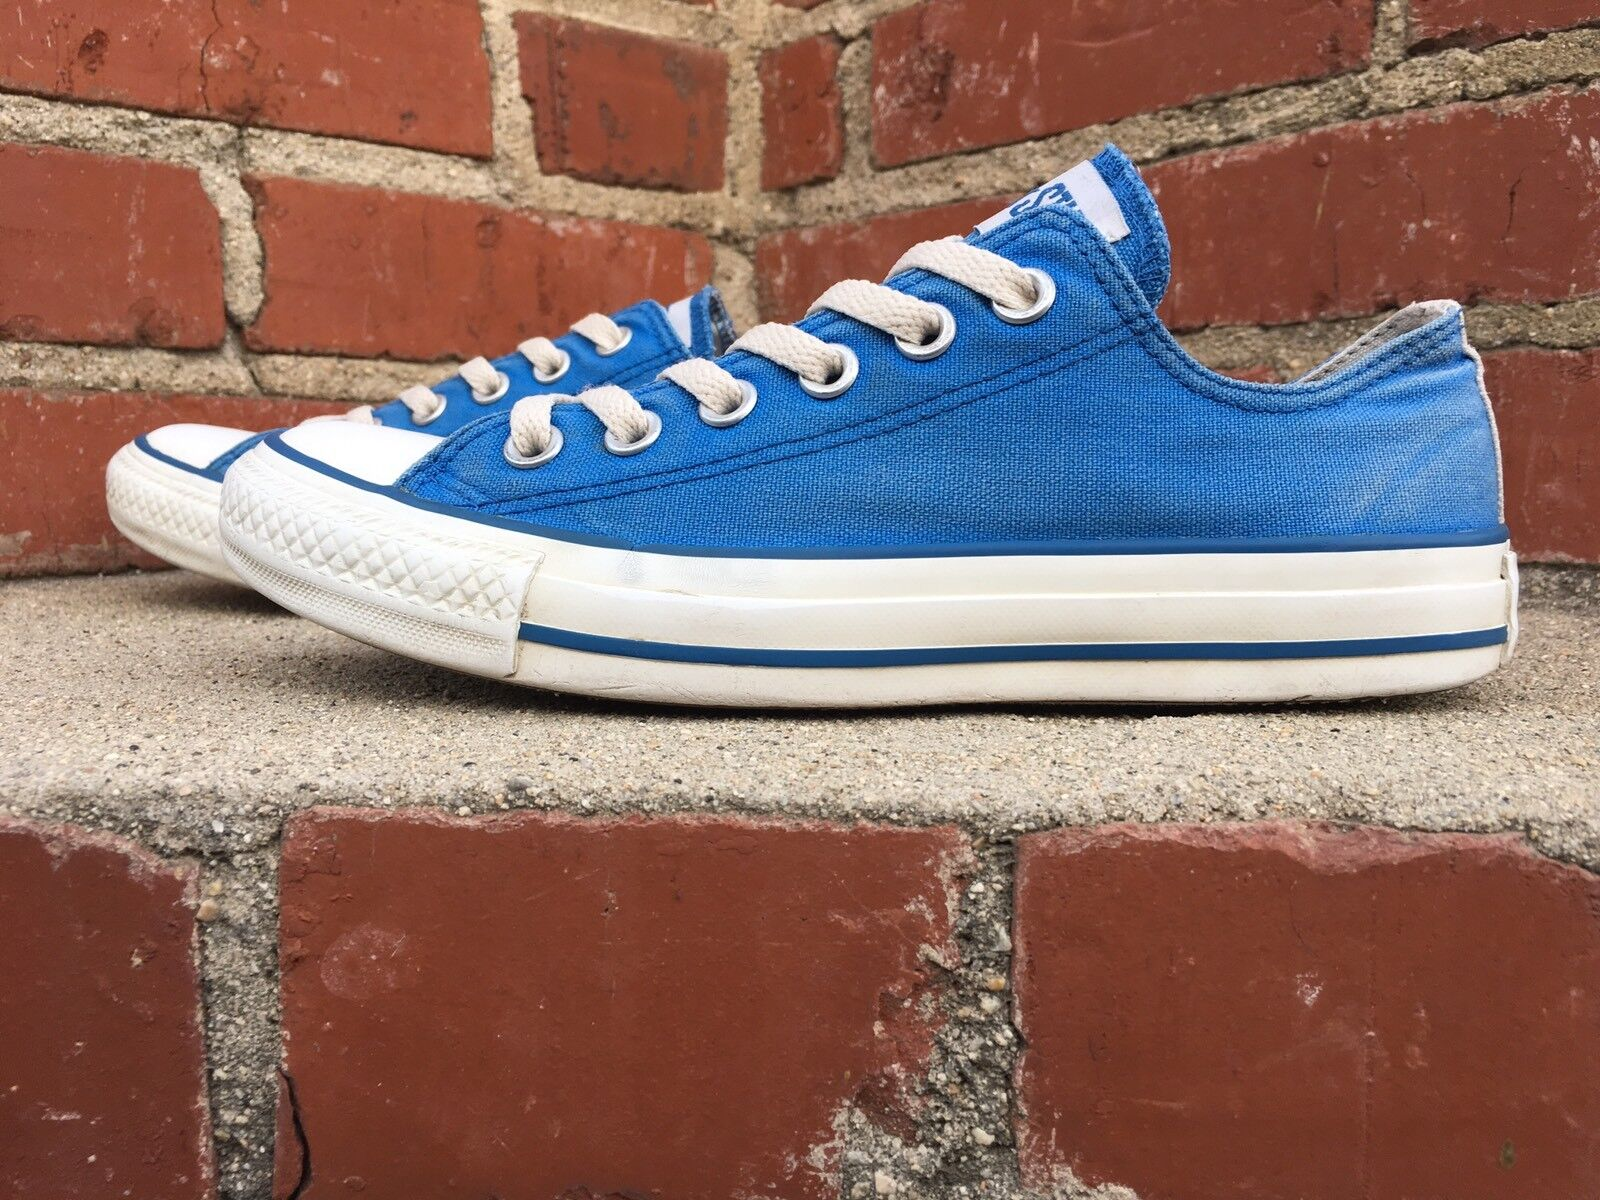 Converse Chuck Taylor AS bluee Ox Low Top Sneaker 231586F Men 4.5 Women Size 6.5